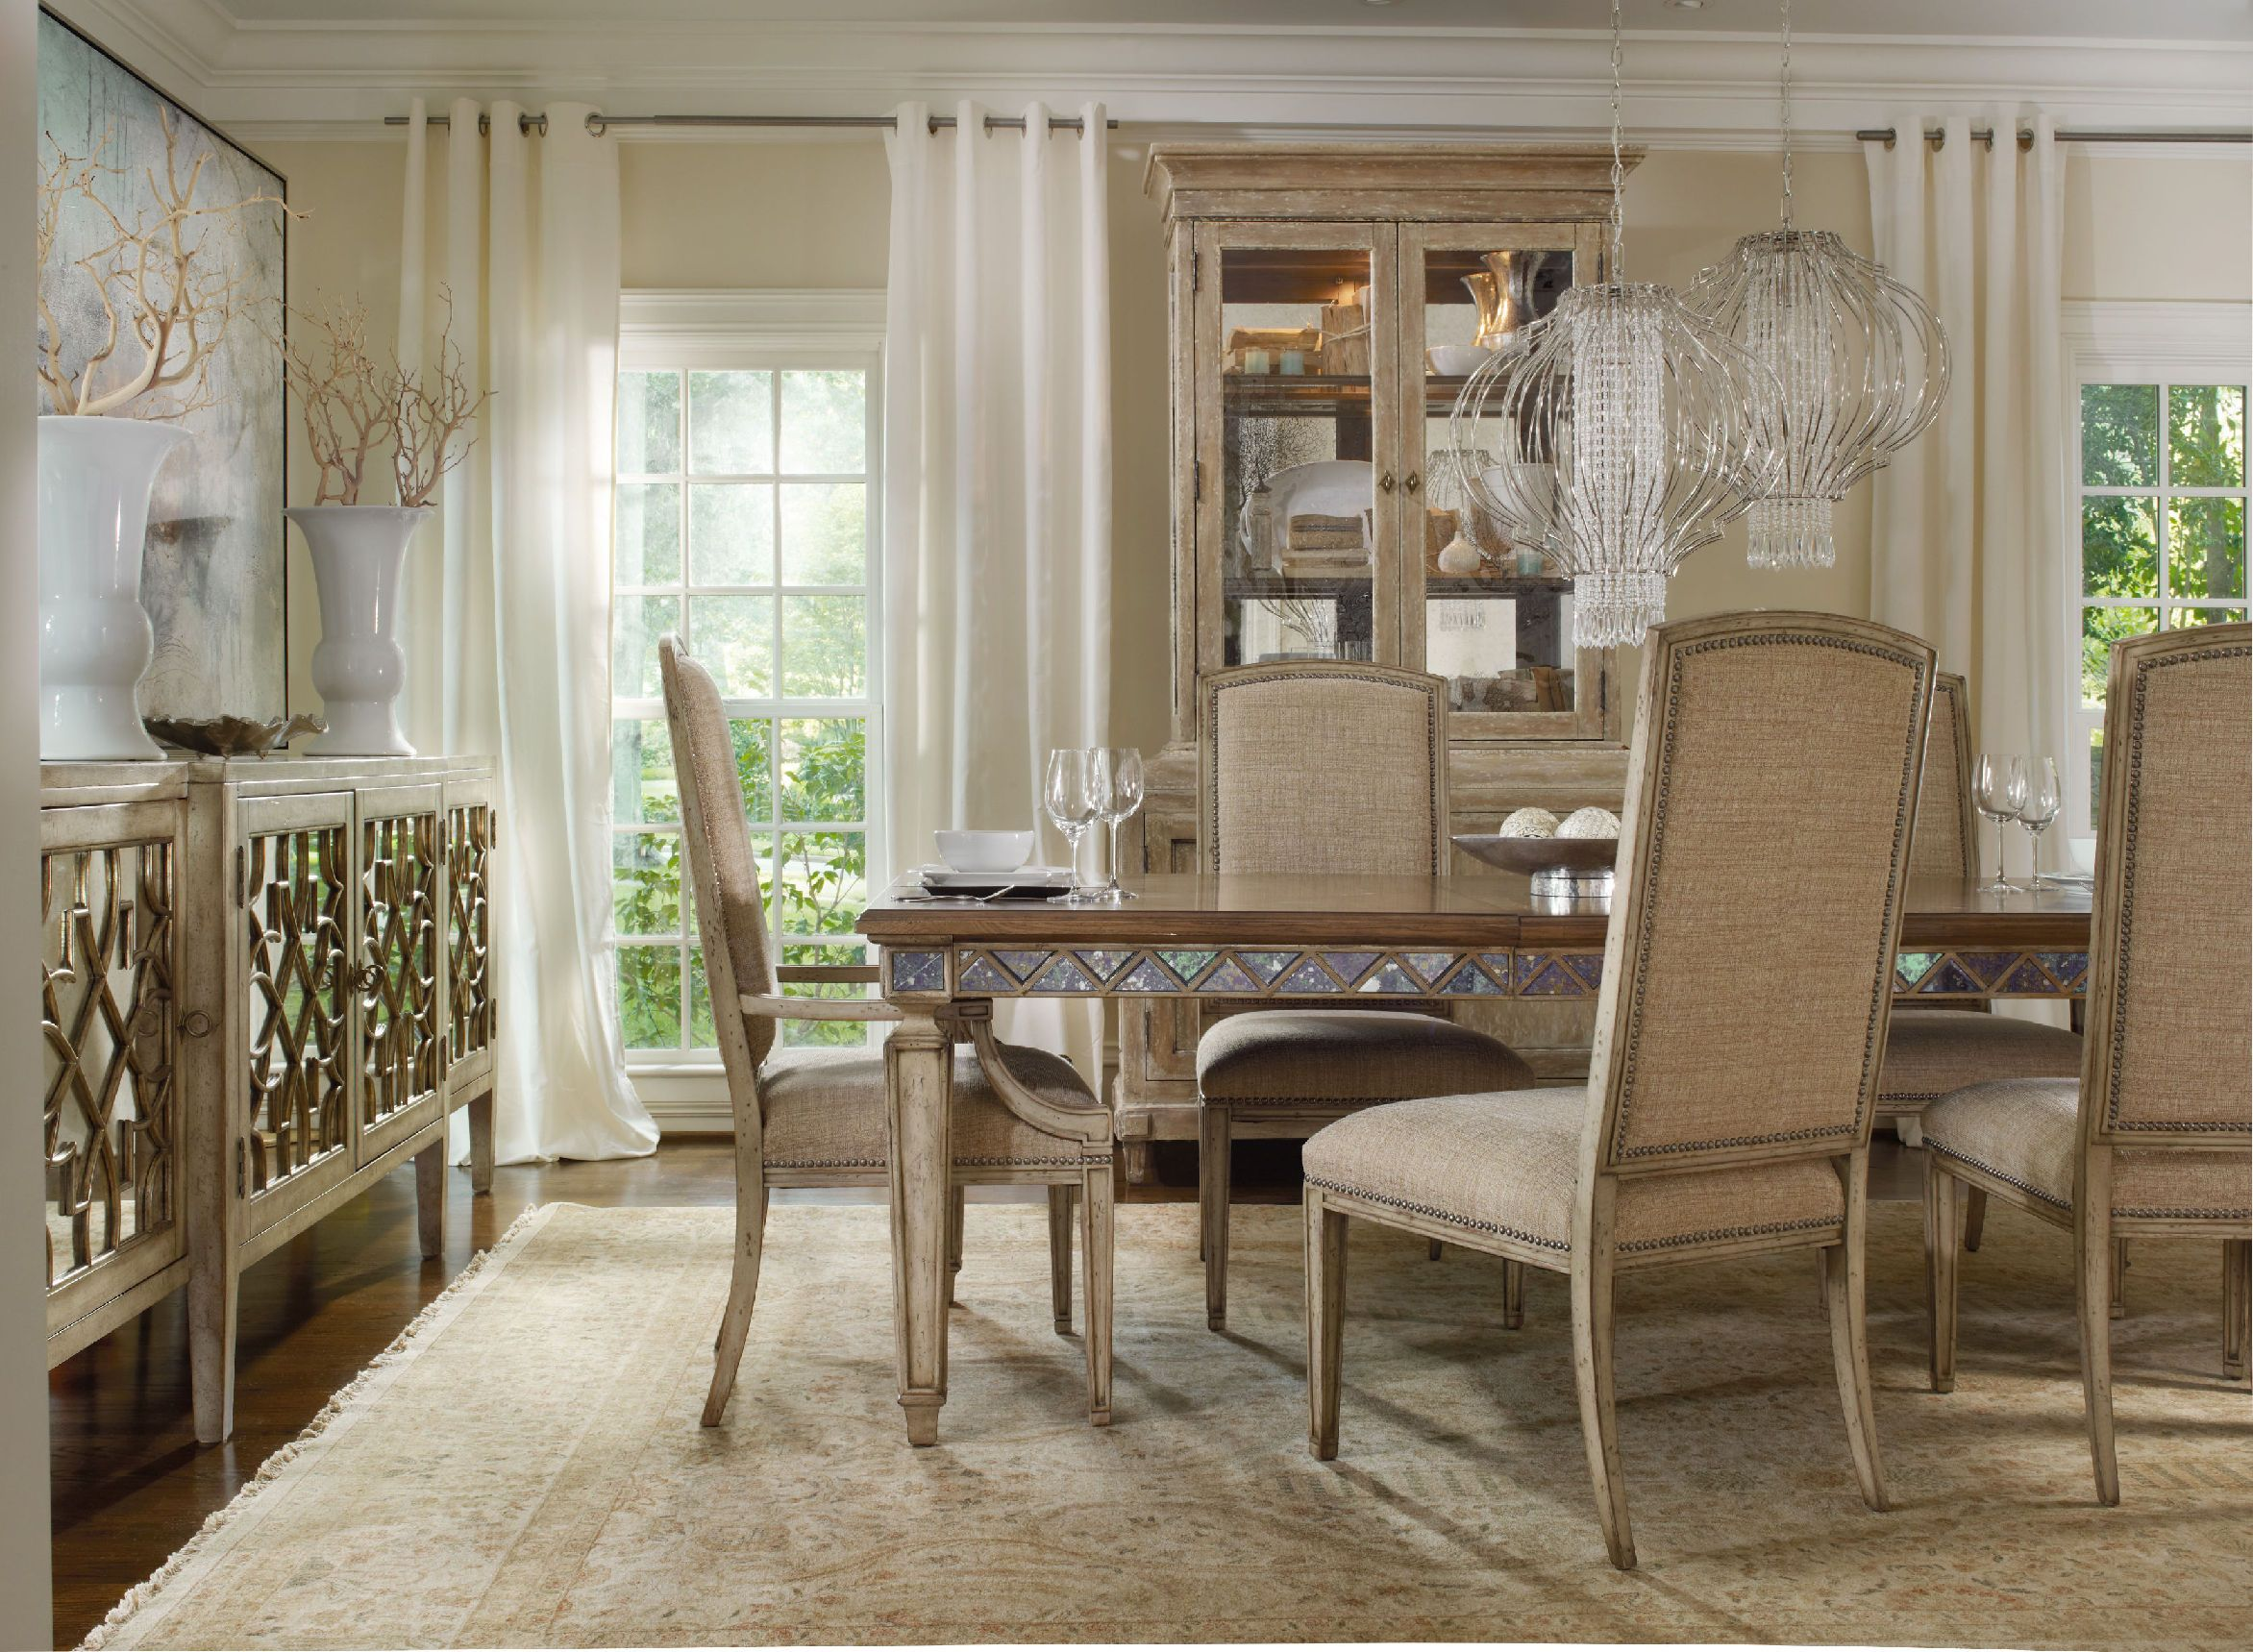 Shop For Hooker Furniture Sanctuary Mirage Side Chair Dune, And Other Dining  Room Chairs Furniture. Pursue Serenity At Home. Create Your Own Personal ...